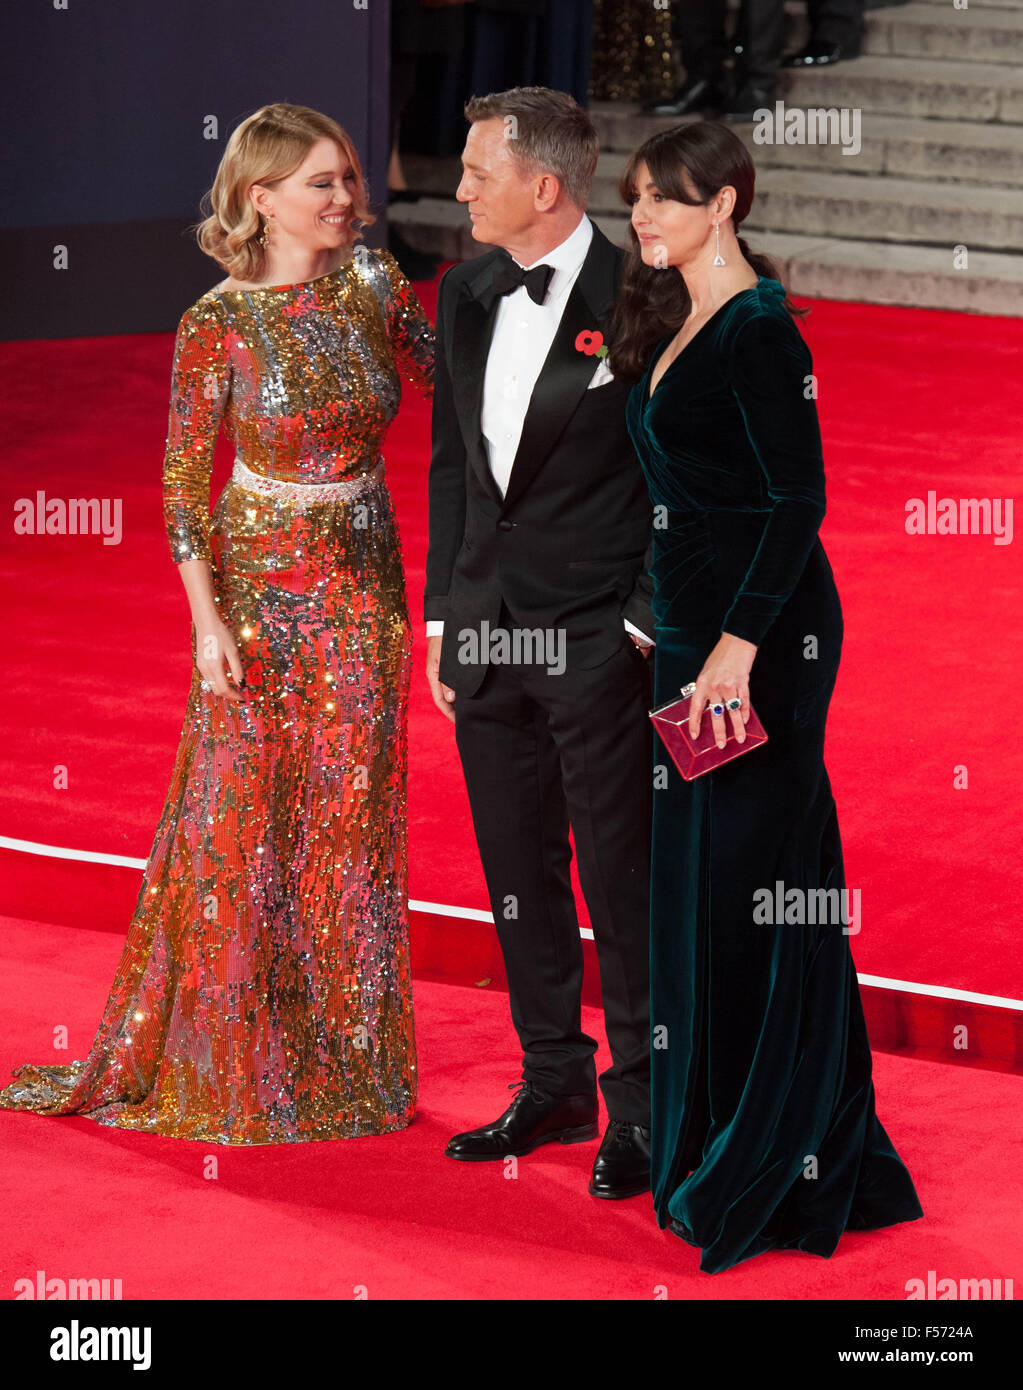 Lea Seydoux attending the world premiere of the latest 'Bond' movie 'Spectre' at the Royal Albert - Stock Image